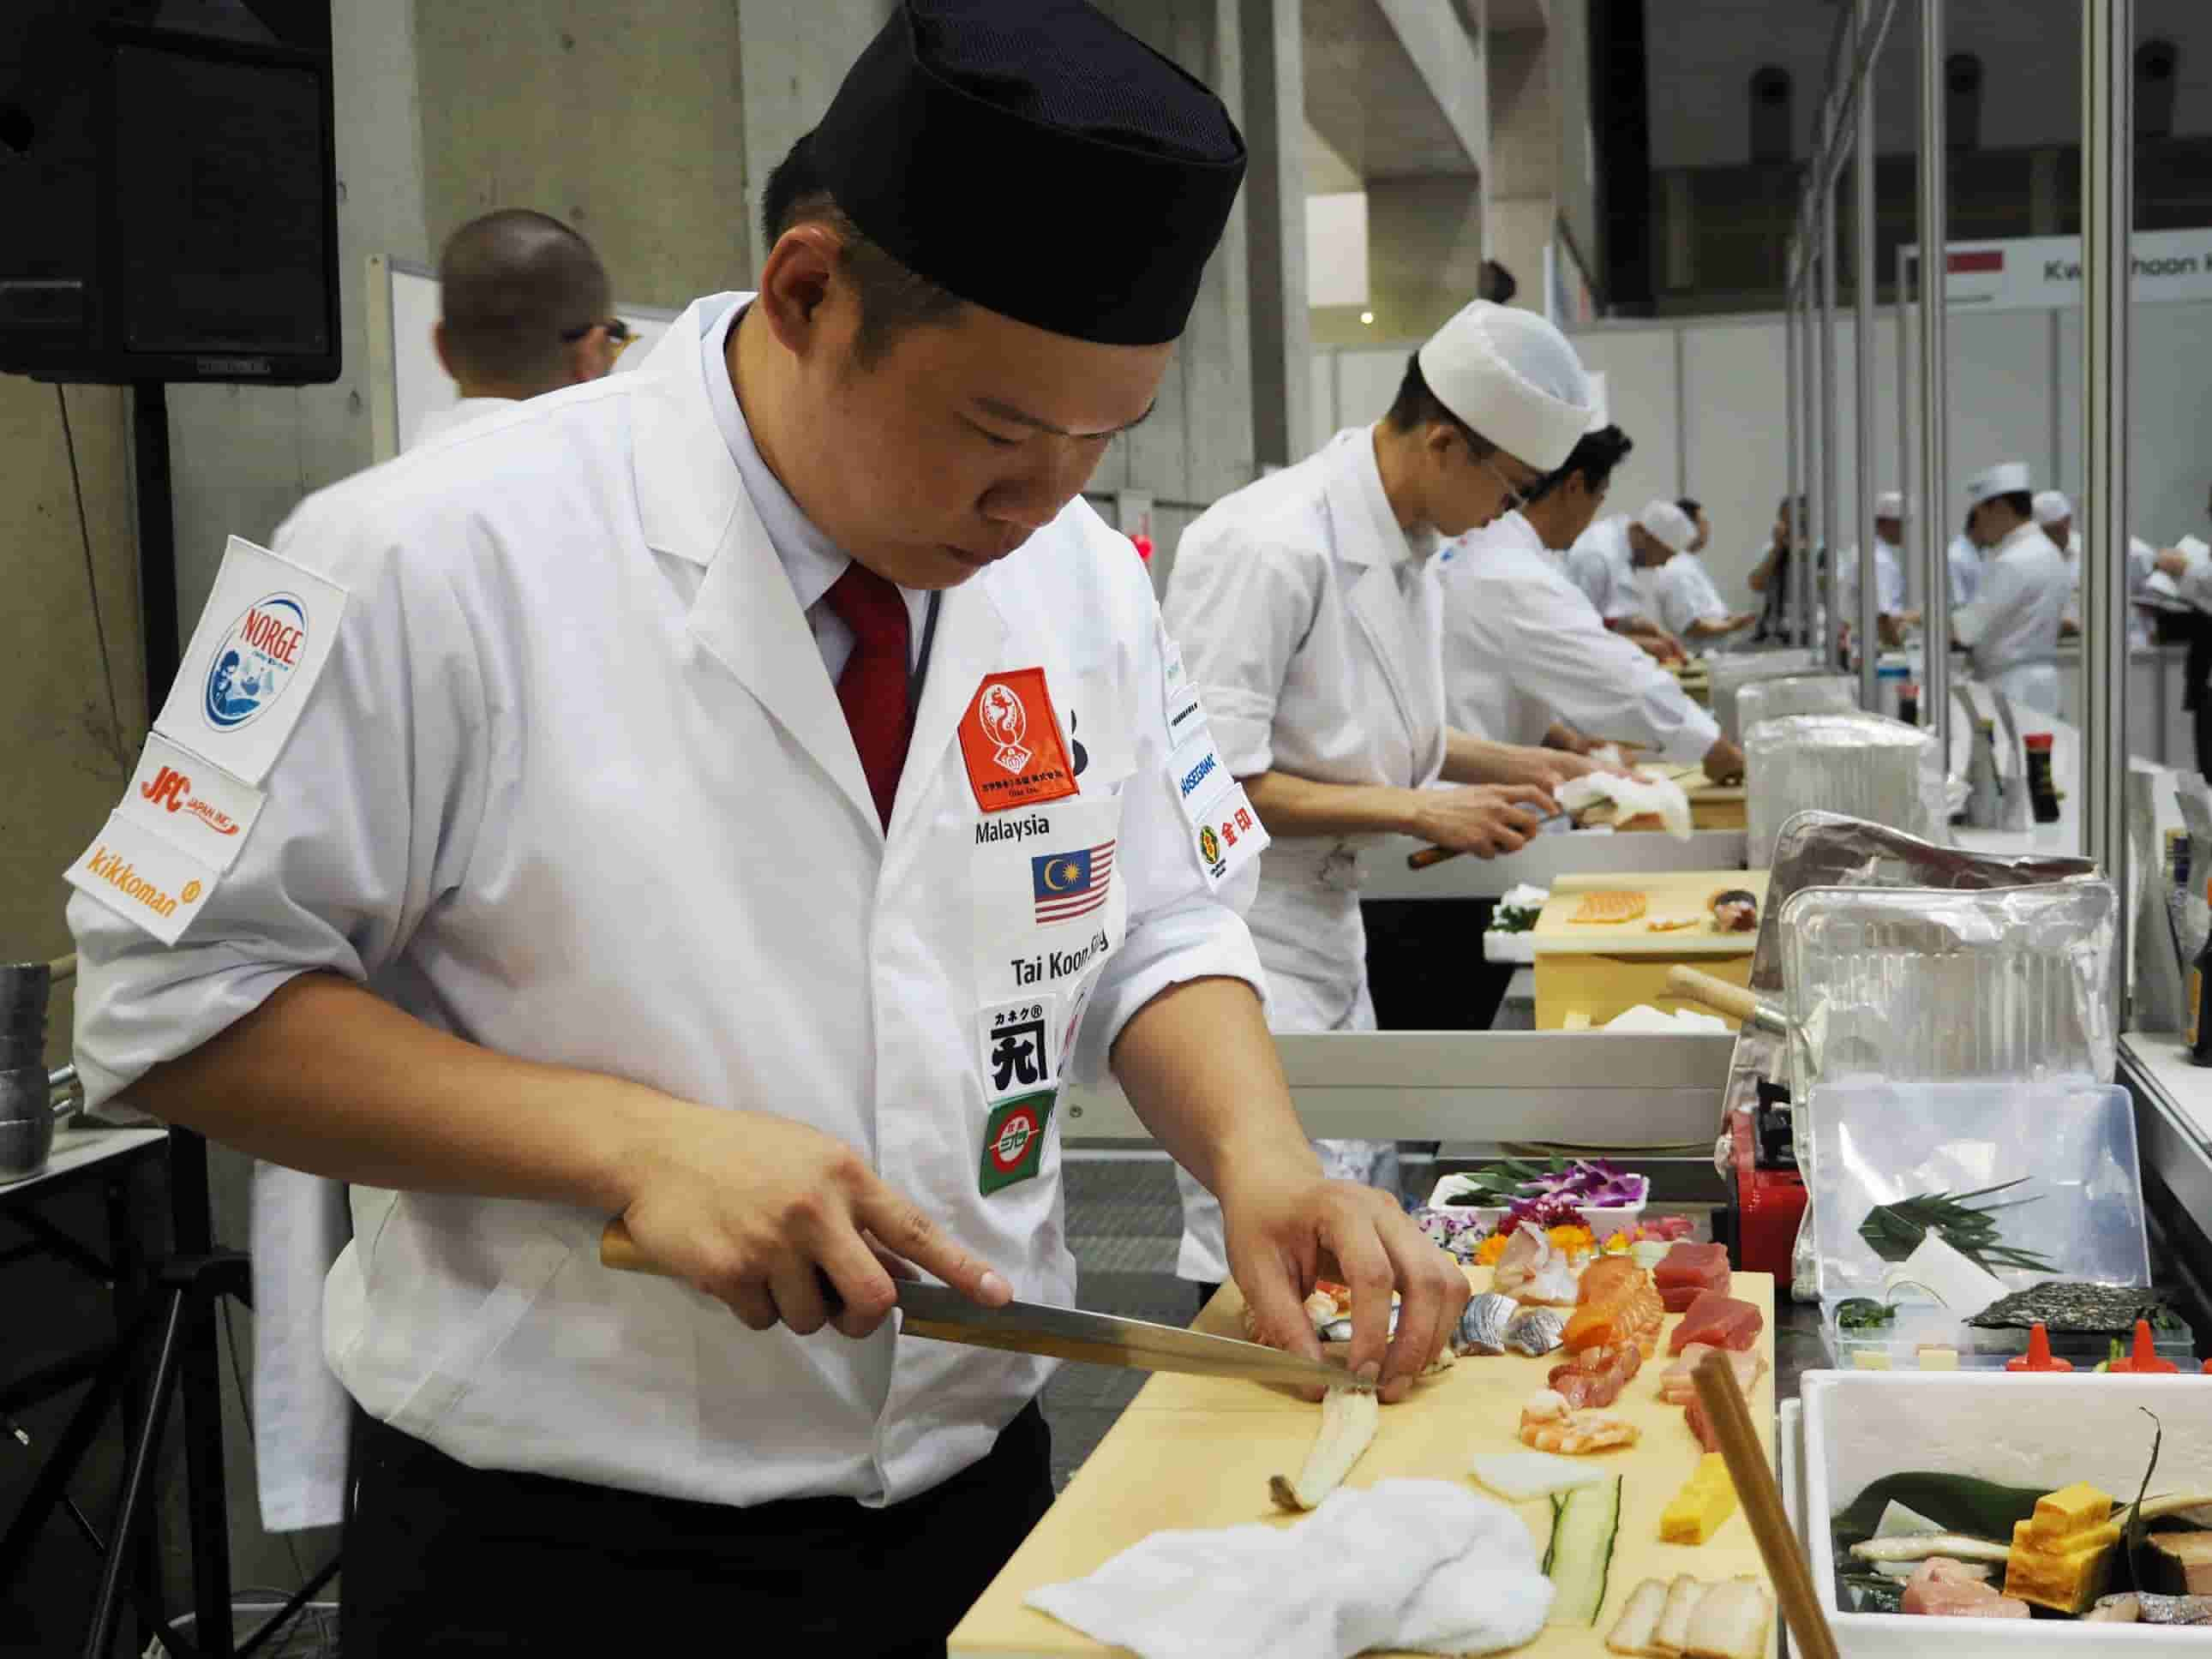 Sushi chefs in the world compete for skills